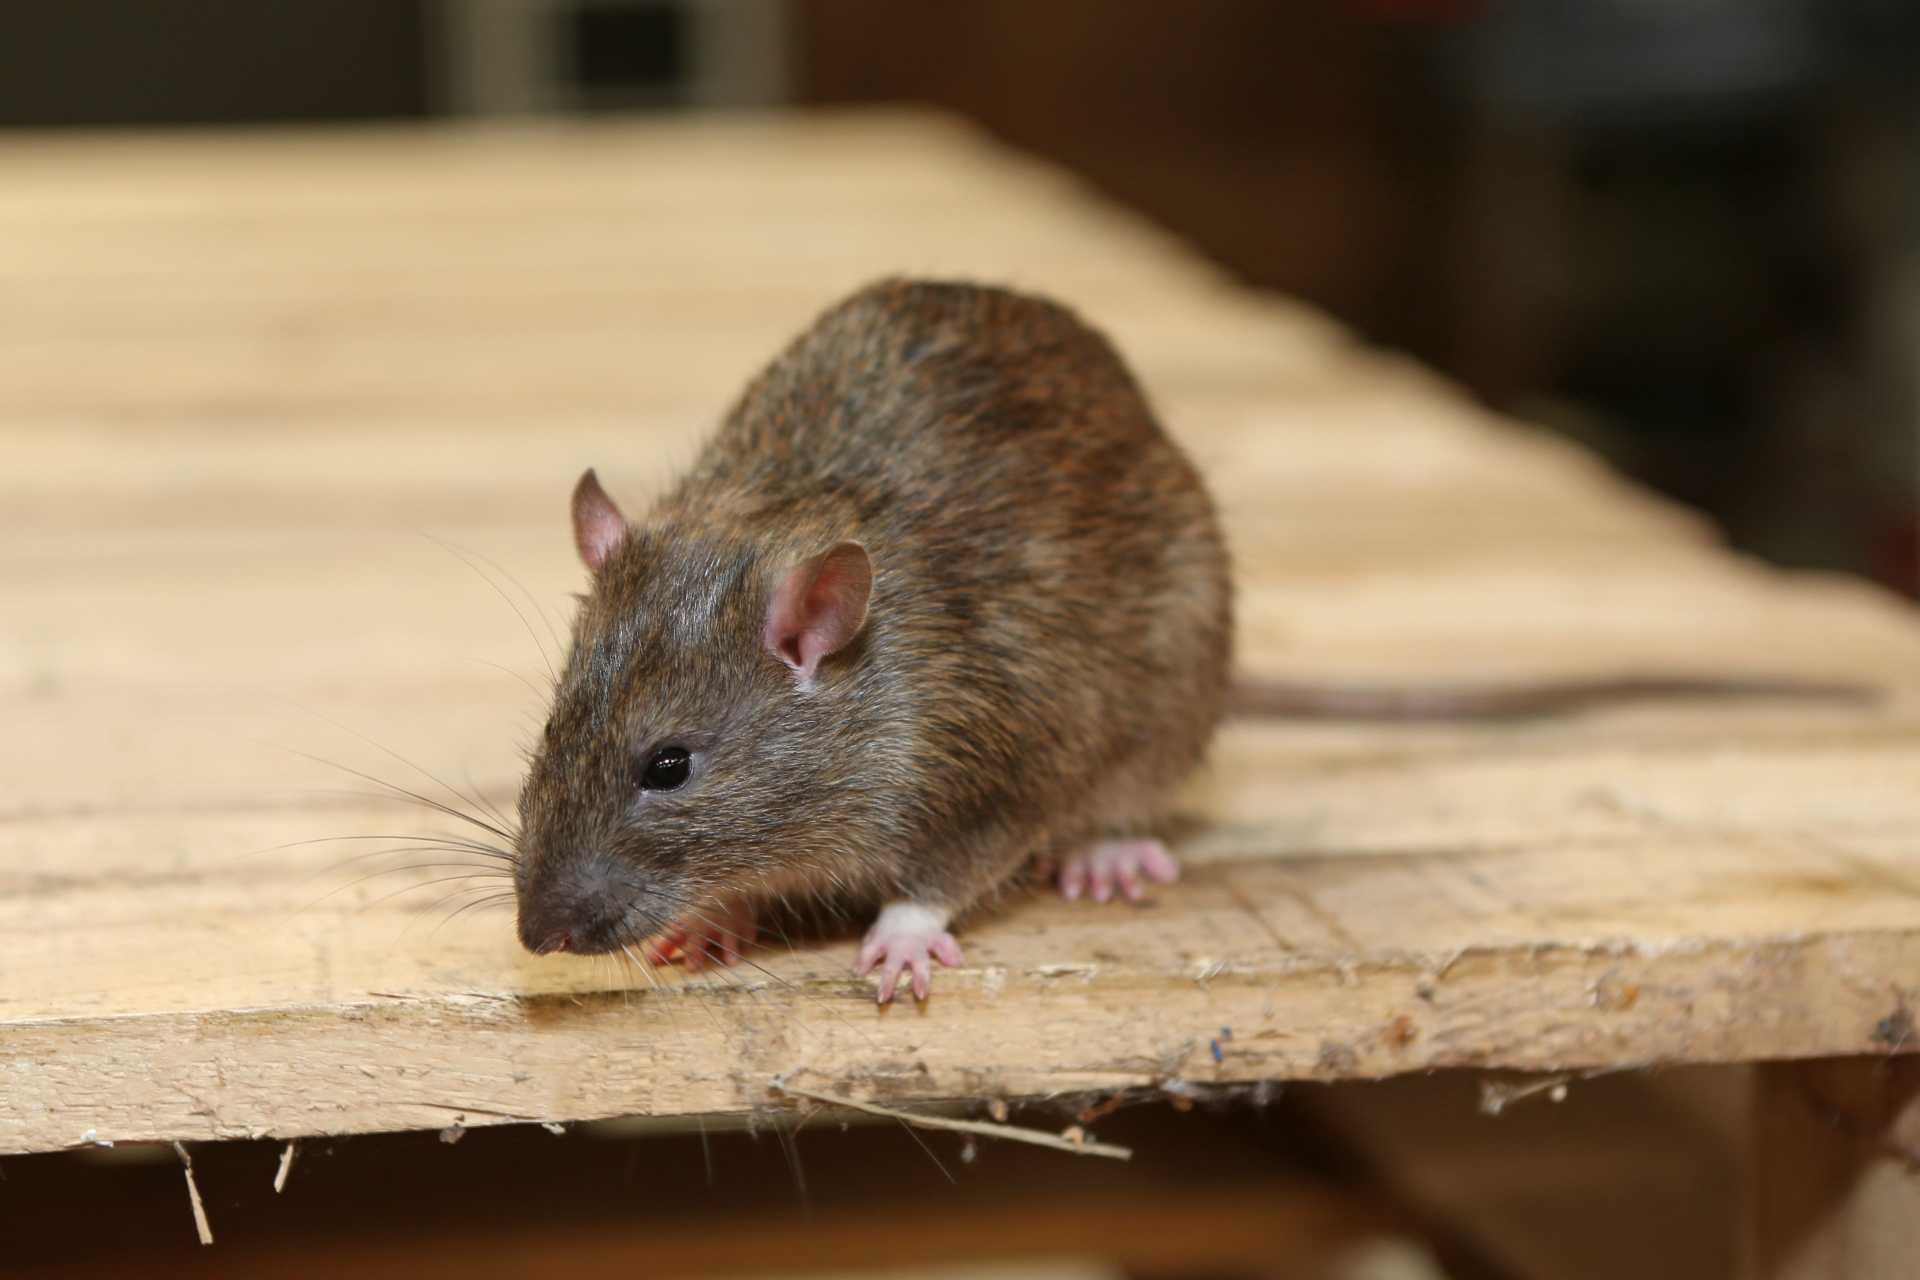 Rat Infestation, Pest Control in Upper Edmonton, N18. Call Now 020 8166 9746